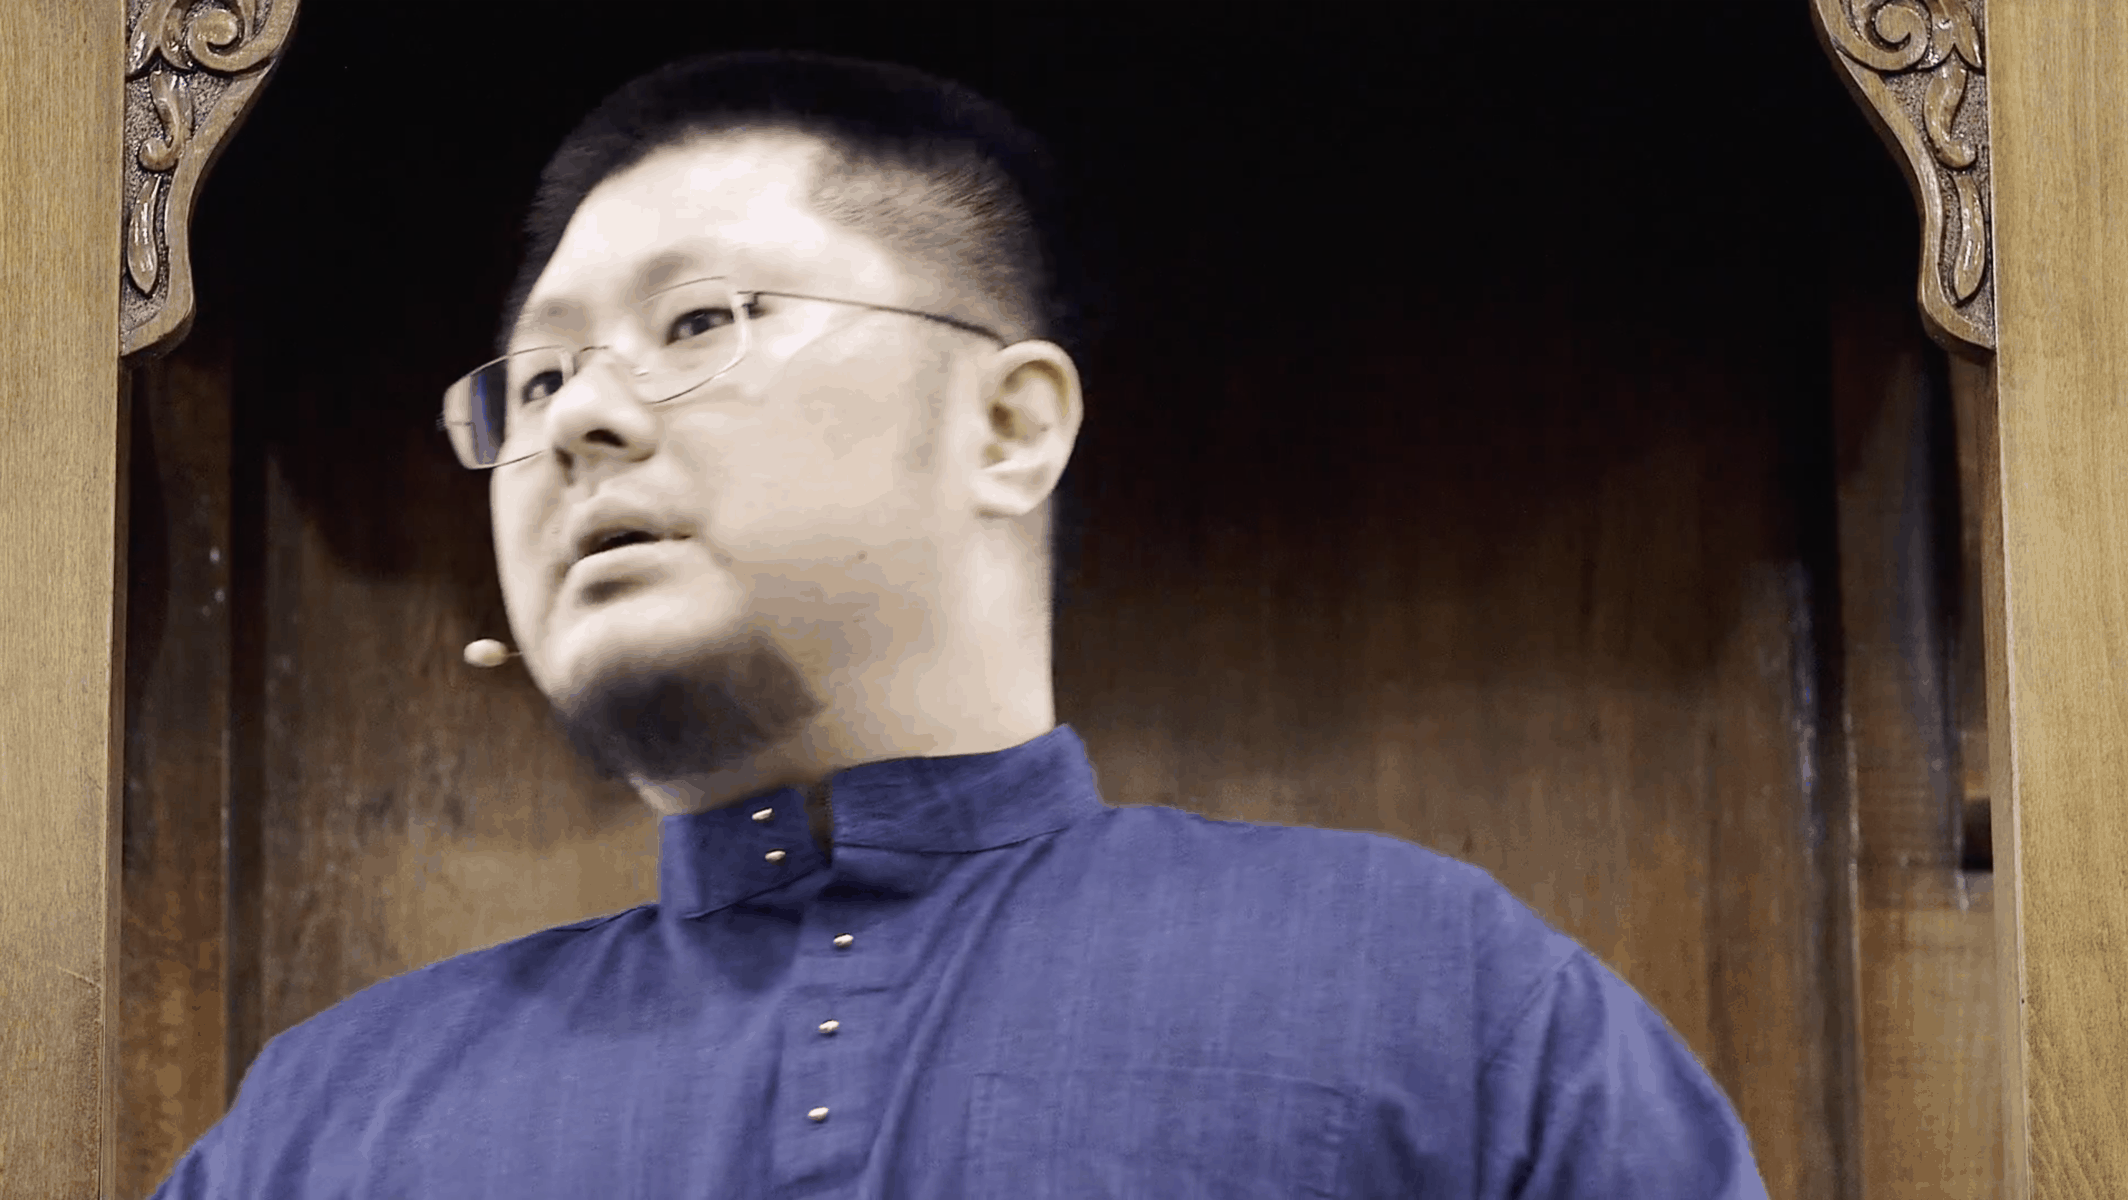 Abdul Rahman Chao – The Art of Manliness